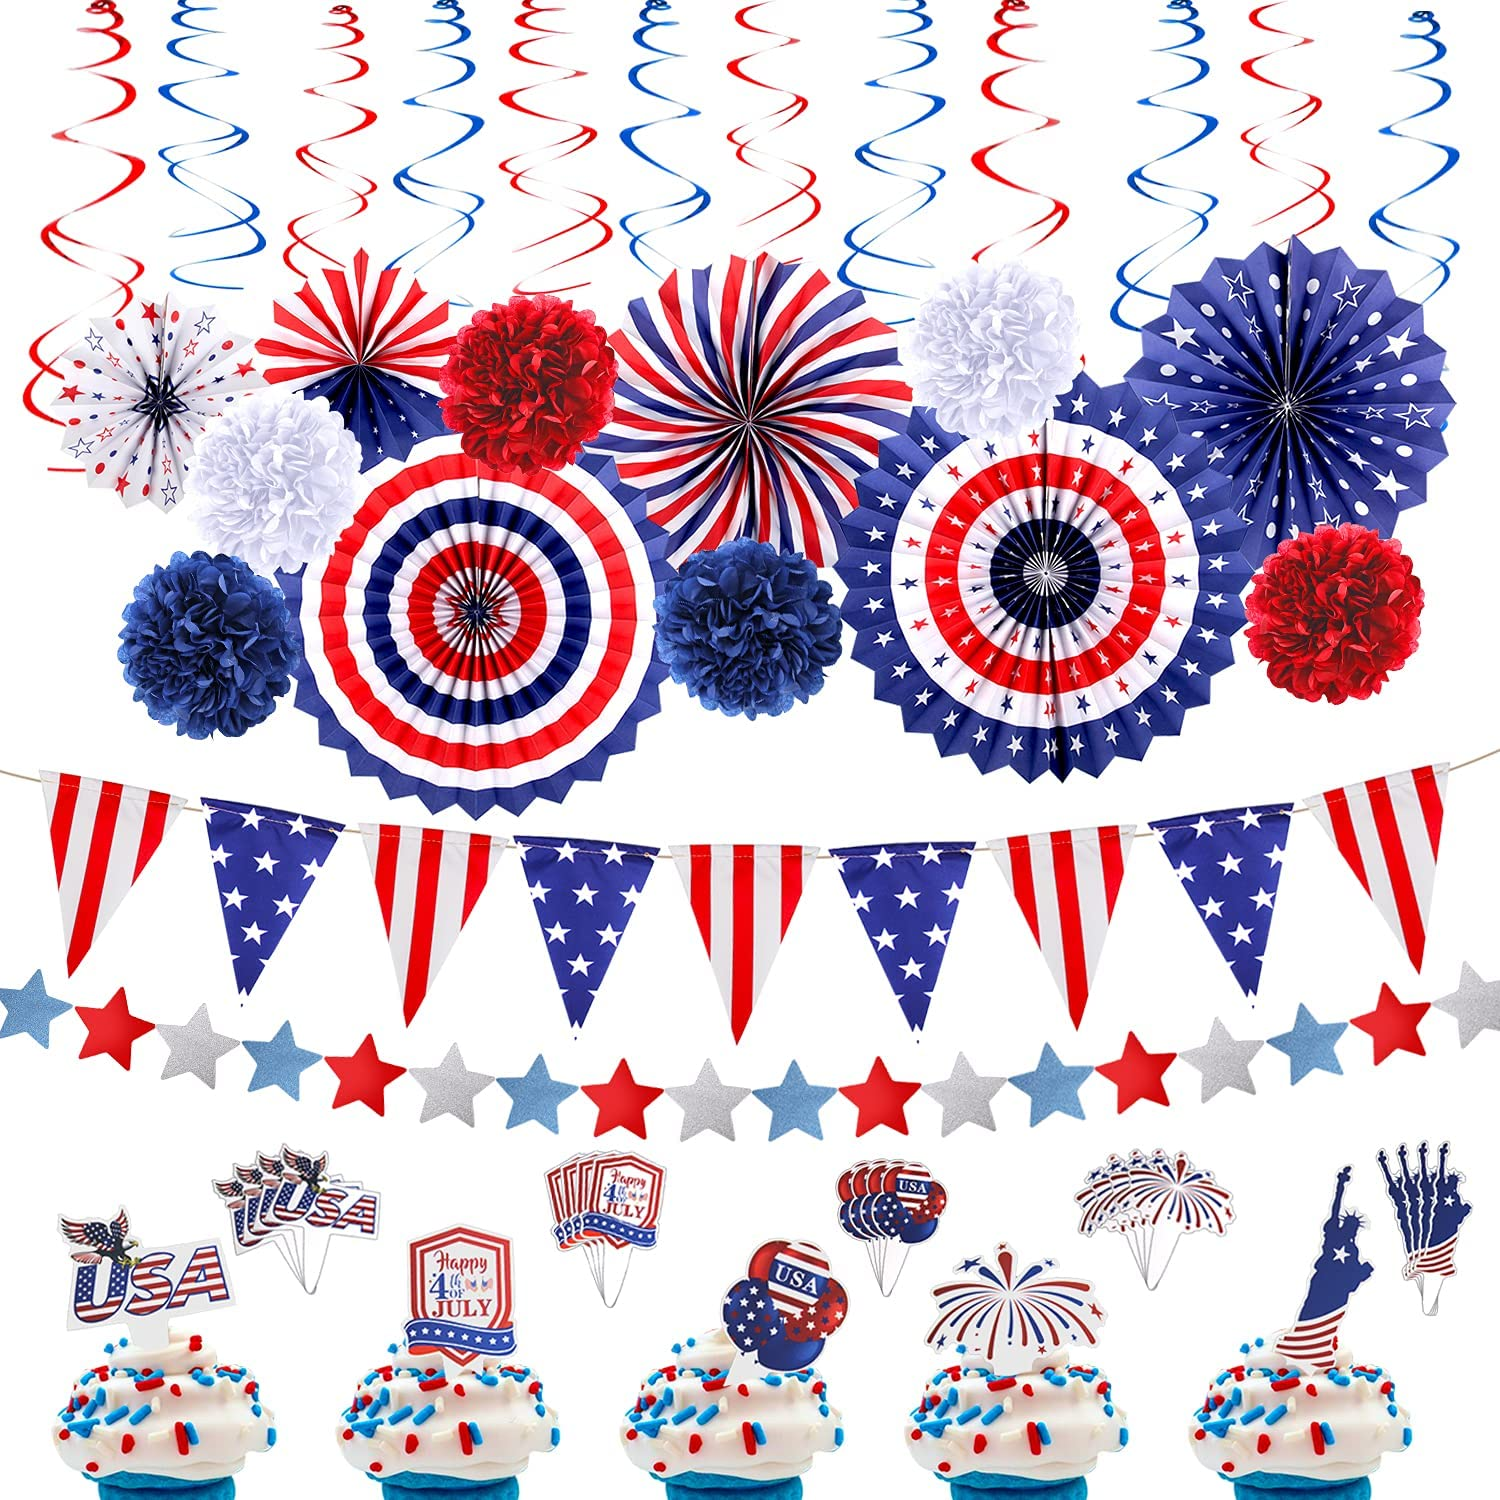 46pcs 4th of July Patriotic Decorations - Fourth of July Decor American Flag Party Supplies - USA Flag Pennant, Red White Blue Paper Fans, Cupcake Toppers, Star Streamer, Hanging Swirls Party Decor